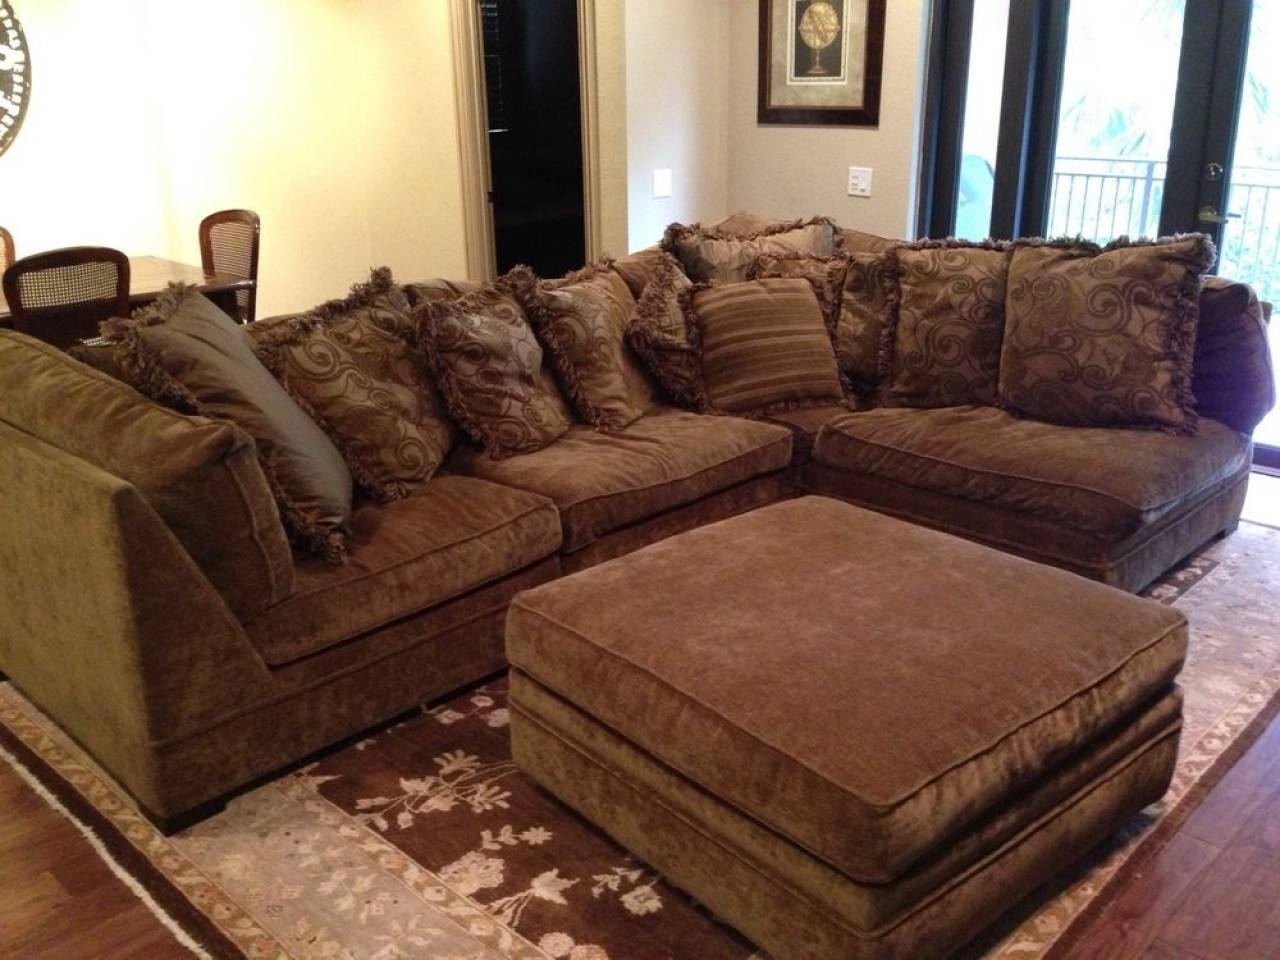 Sofas Center : Down Sectional Sofa Hereo Contemporary Cheap Price inside Down Filled Sectional Sofa (Image 18 of 25)